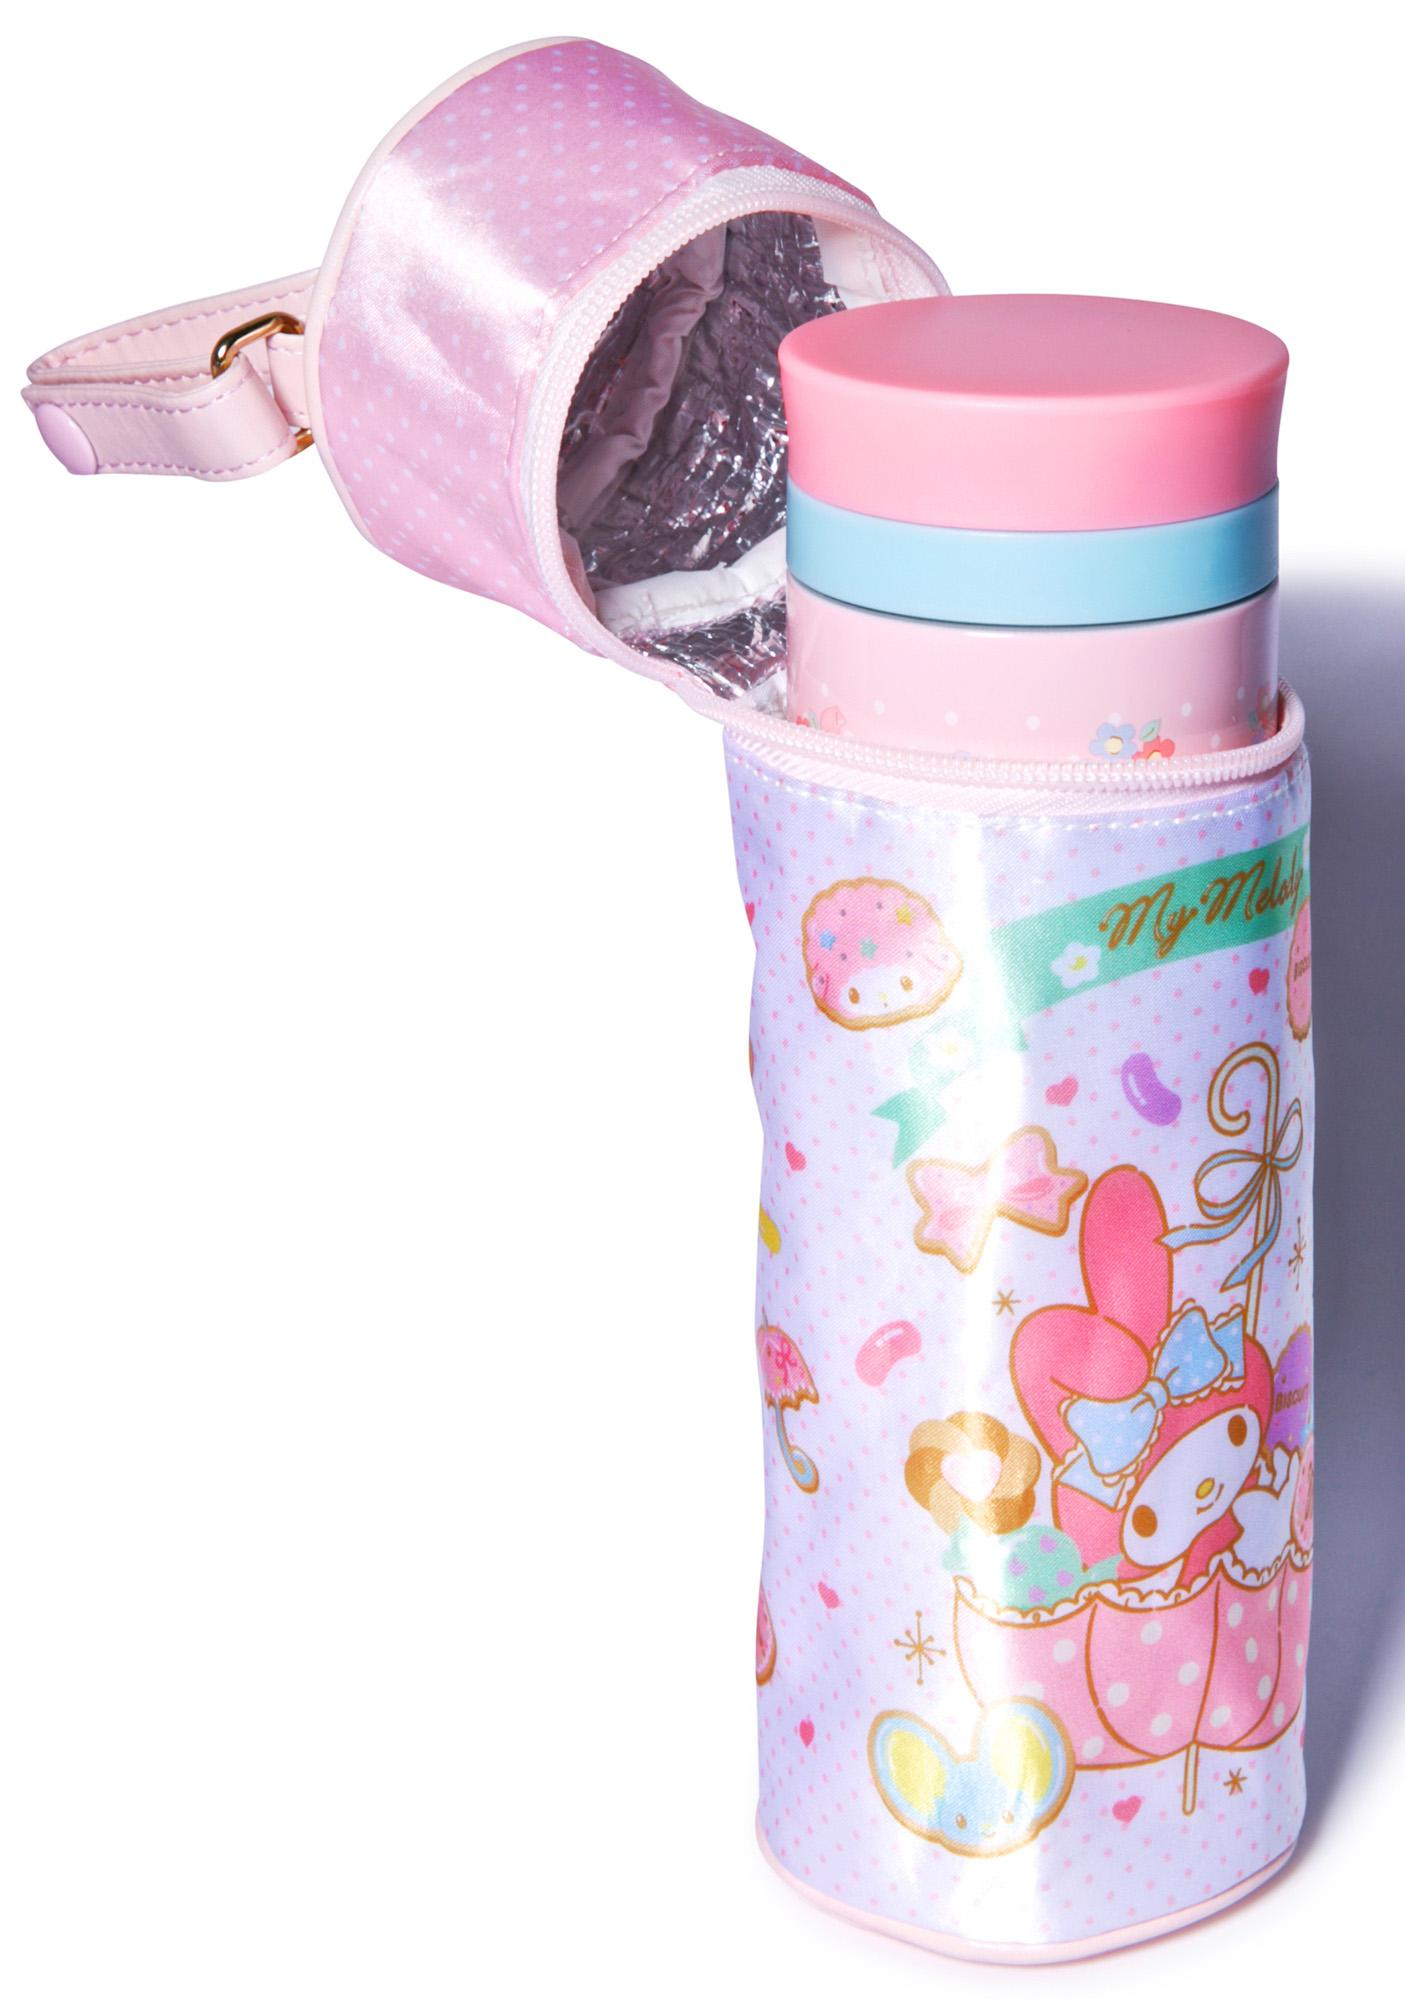 Sanrio My Melody Cherry Water Bottle